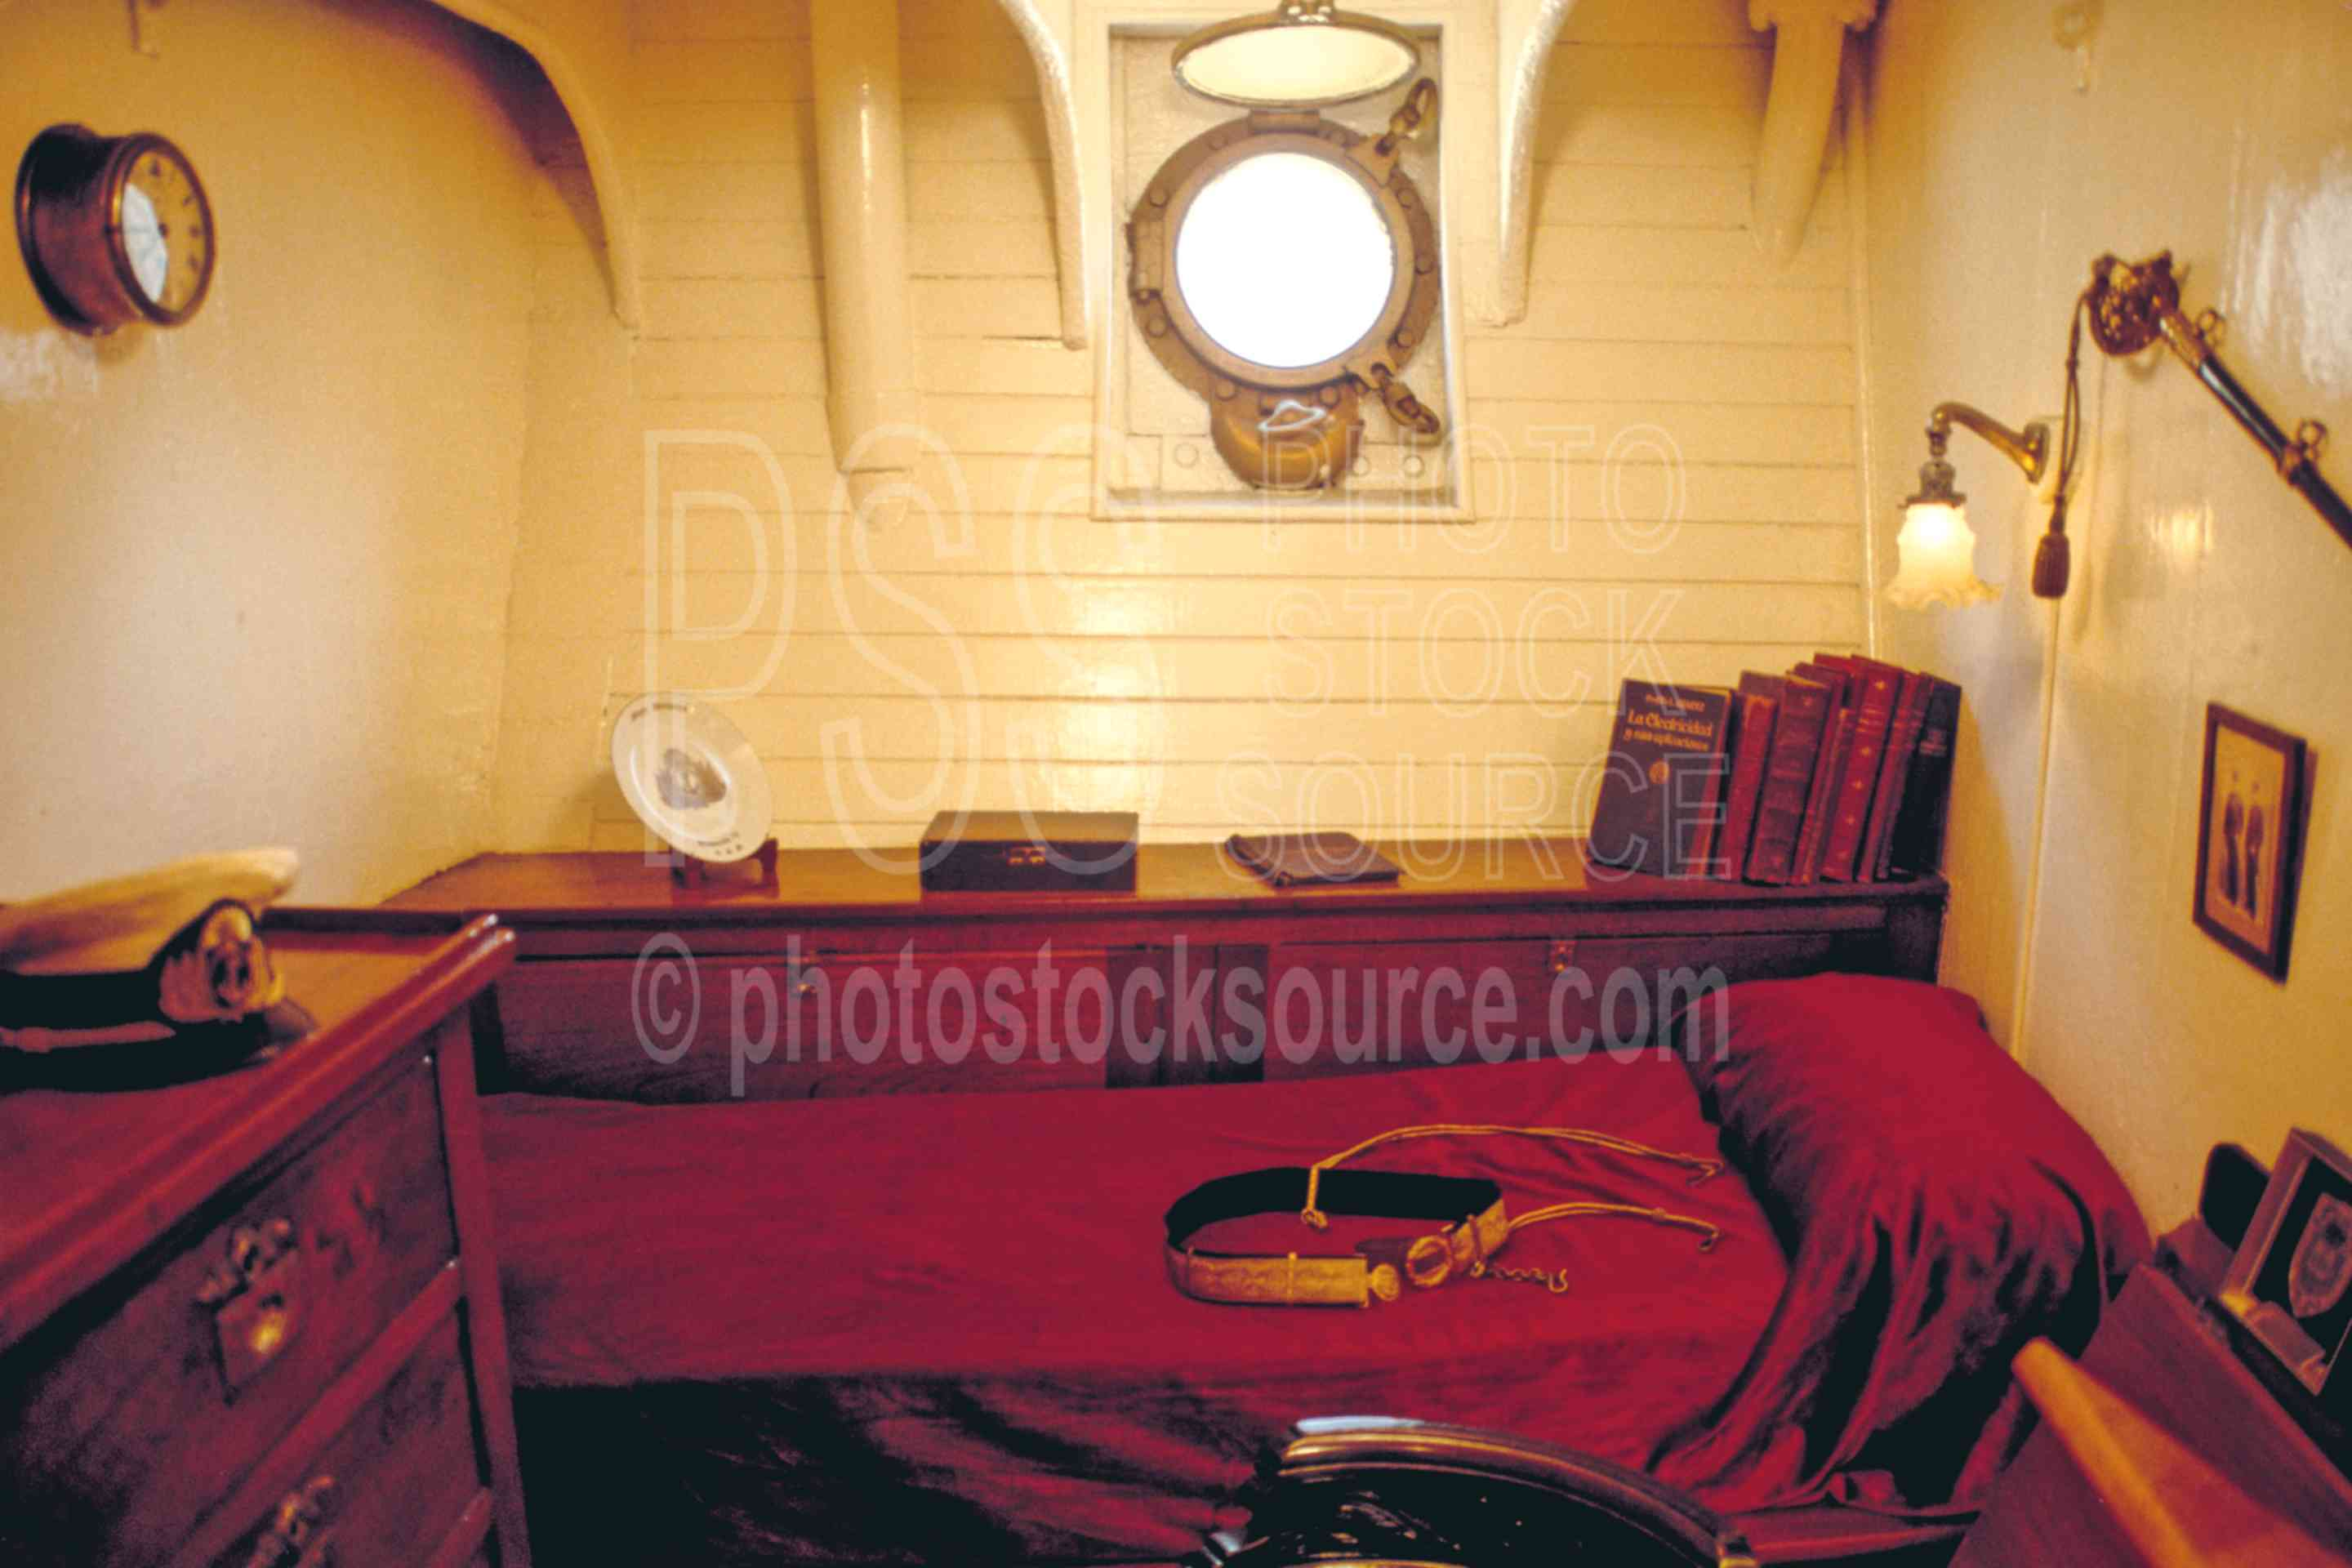 Photo Of Captain S Quarters By Photo Stock Source Ship